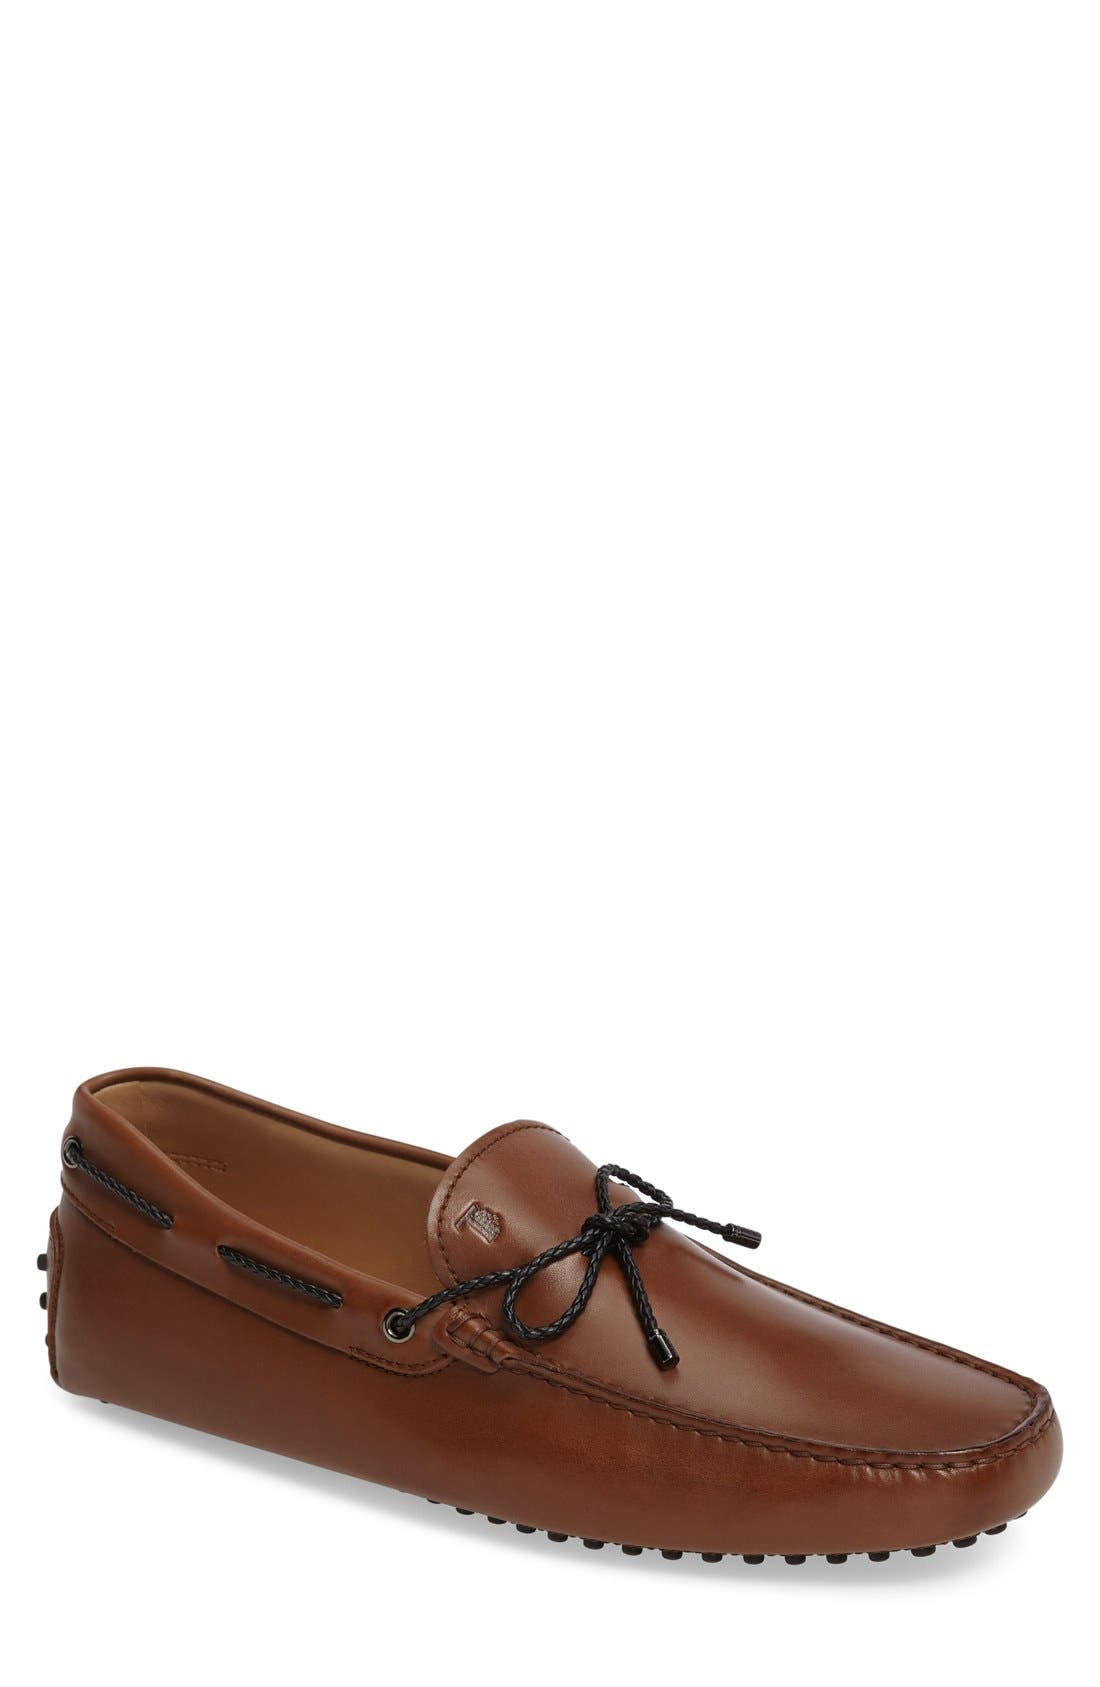 Tods Gommini Driving Shoe,                             Main thumbnail 1, color,                             Light Brown Leather